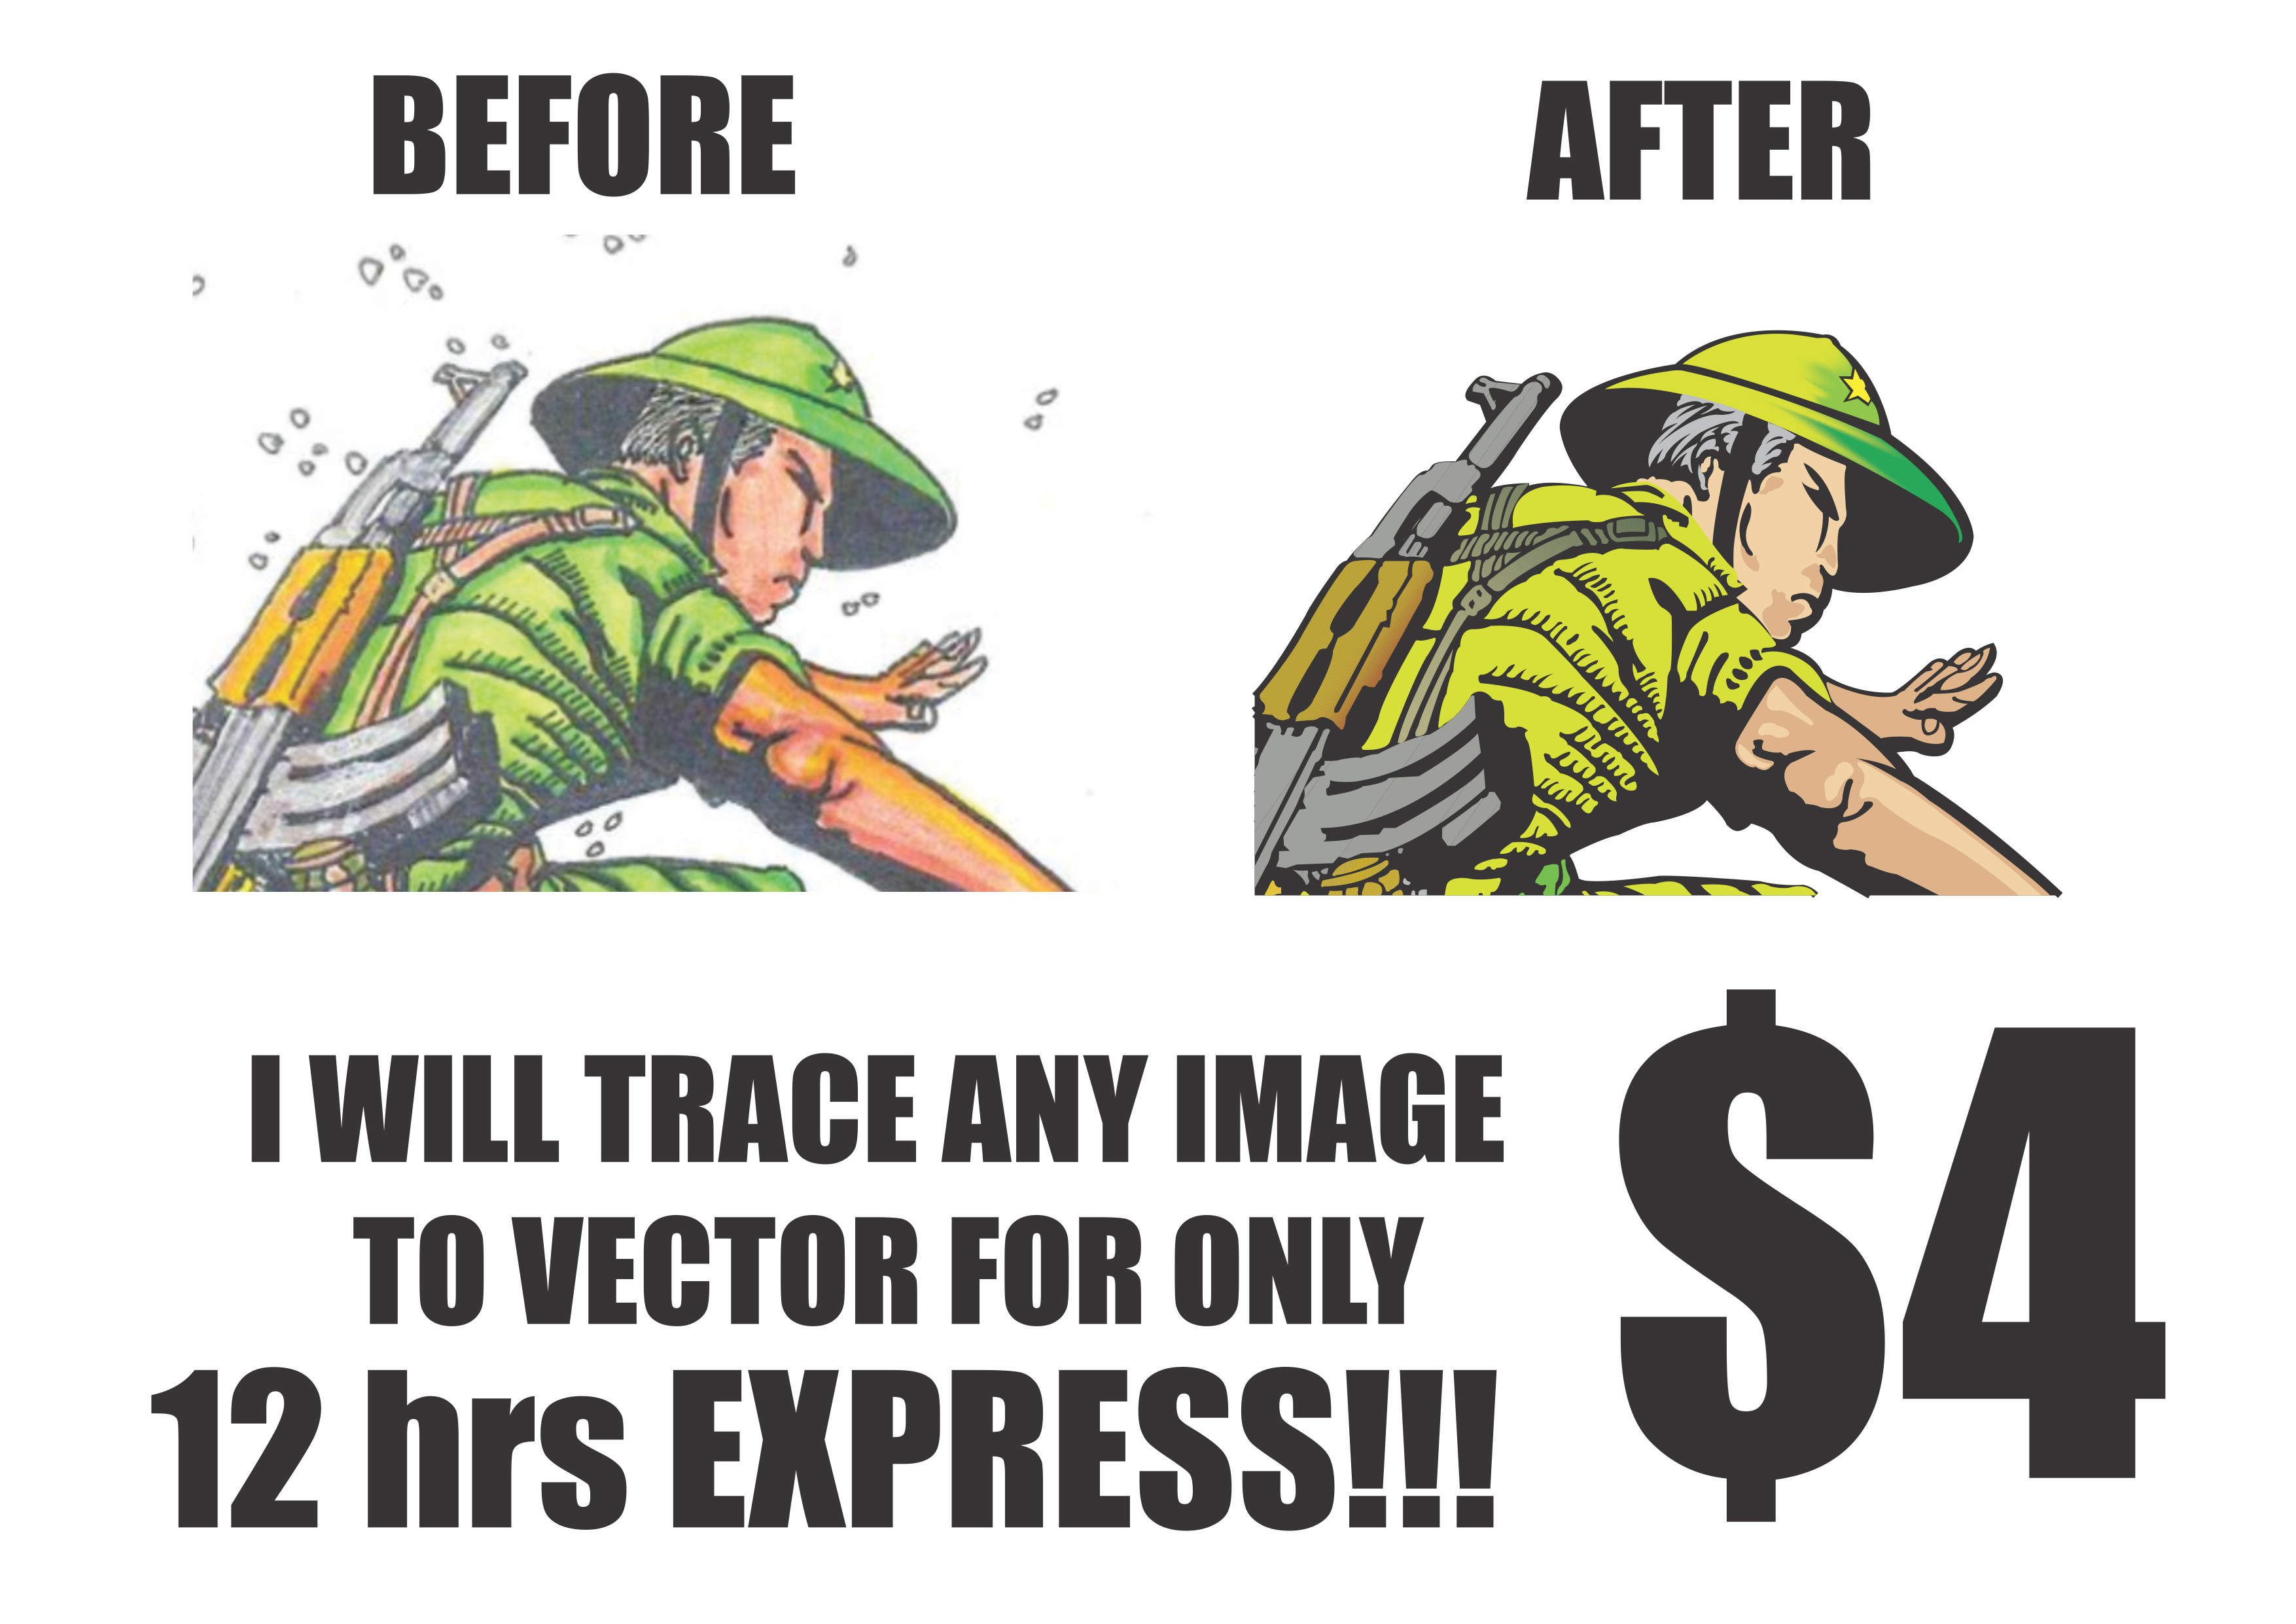 trace any images into VECTOR for high resolution and give you unlimited revisions 24hrs express